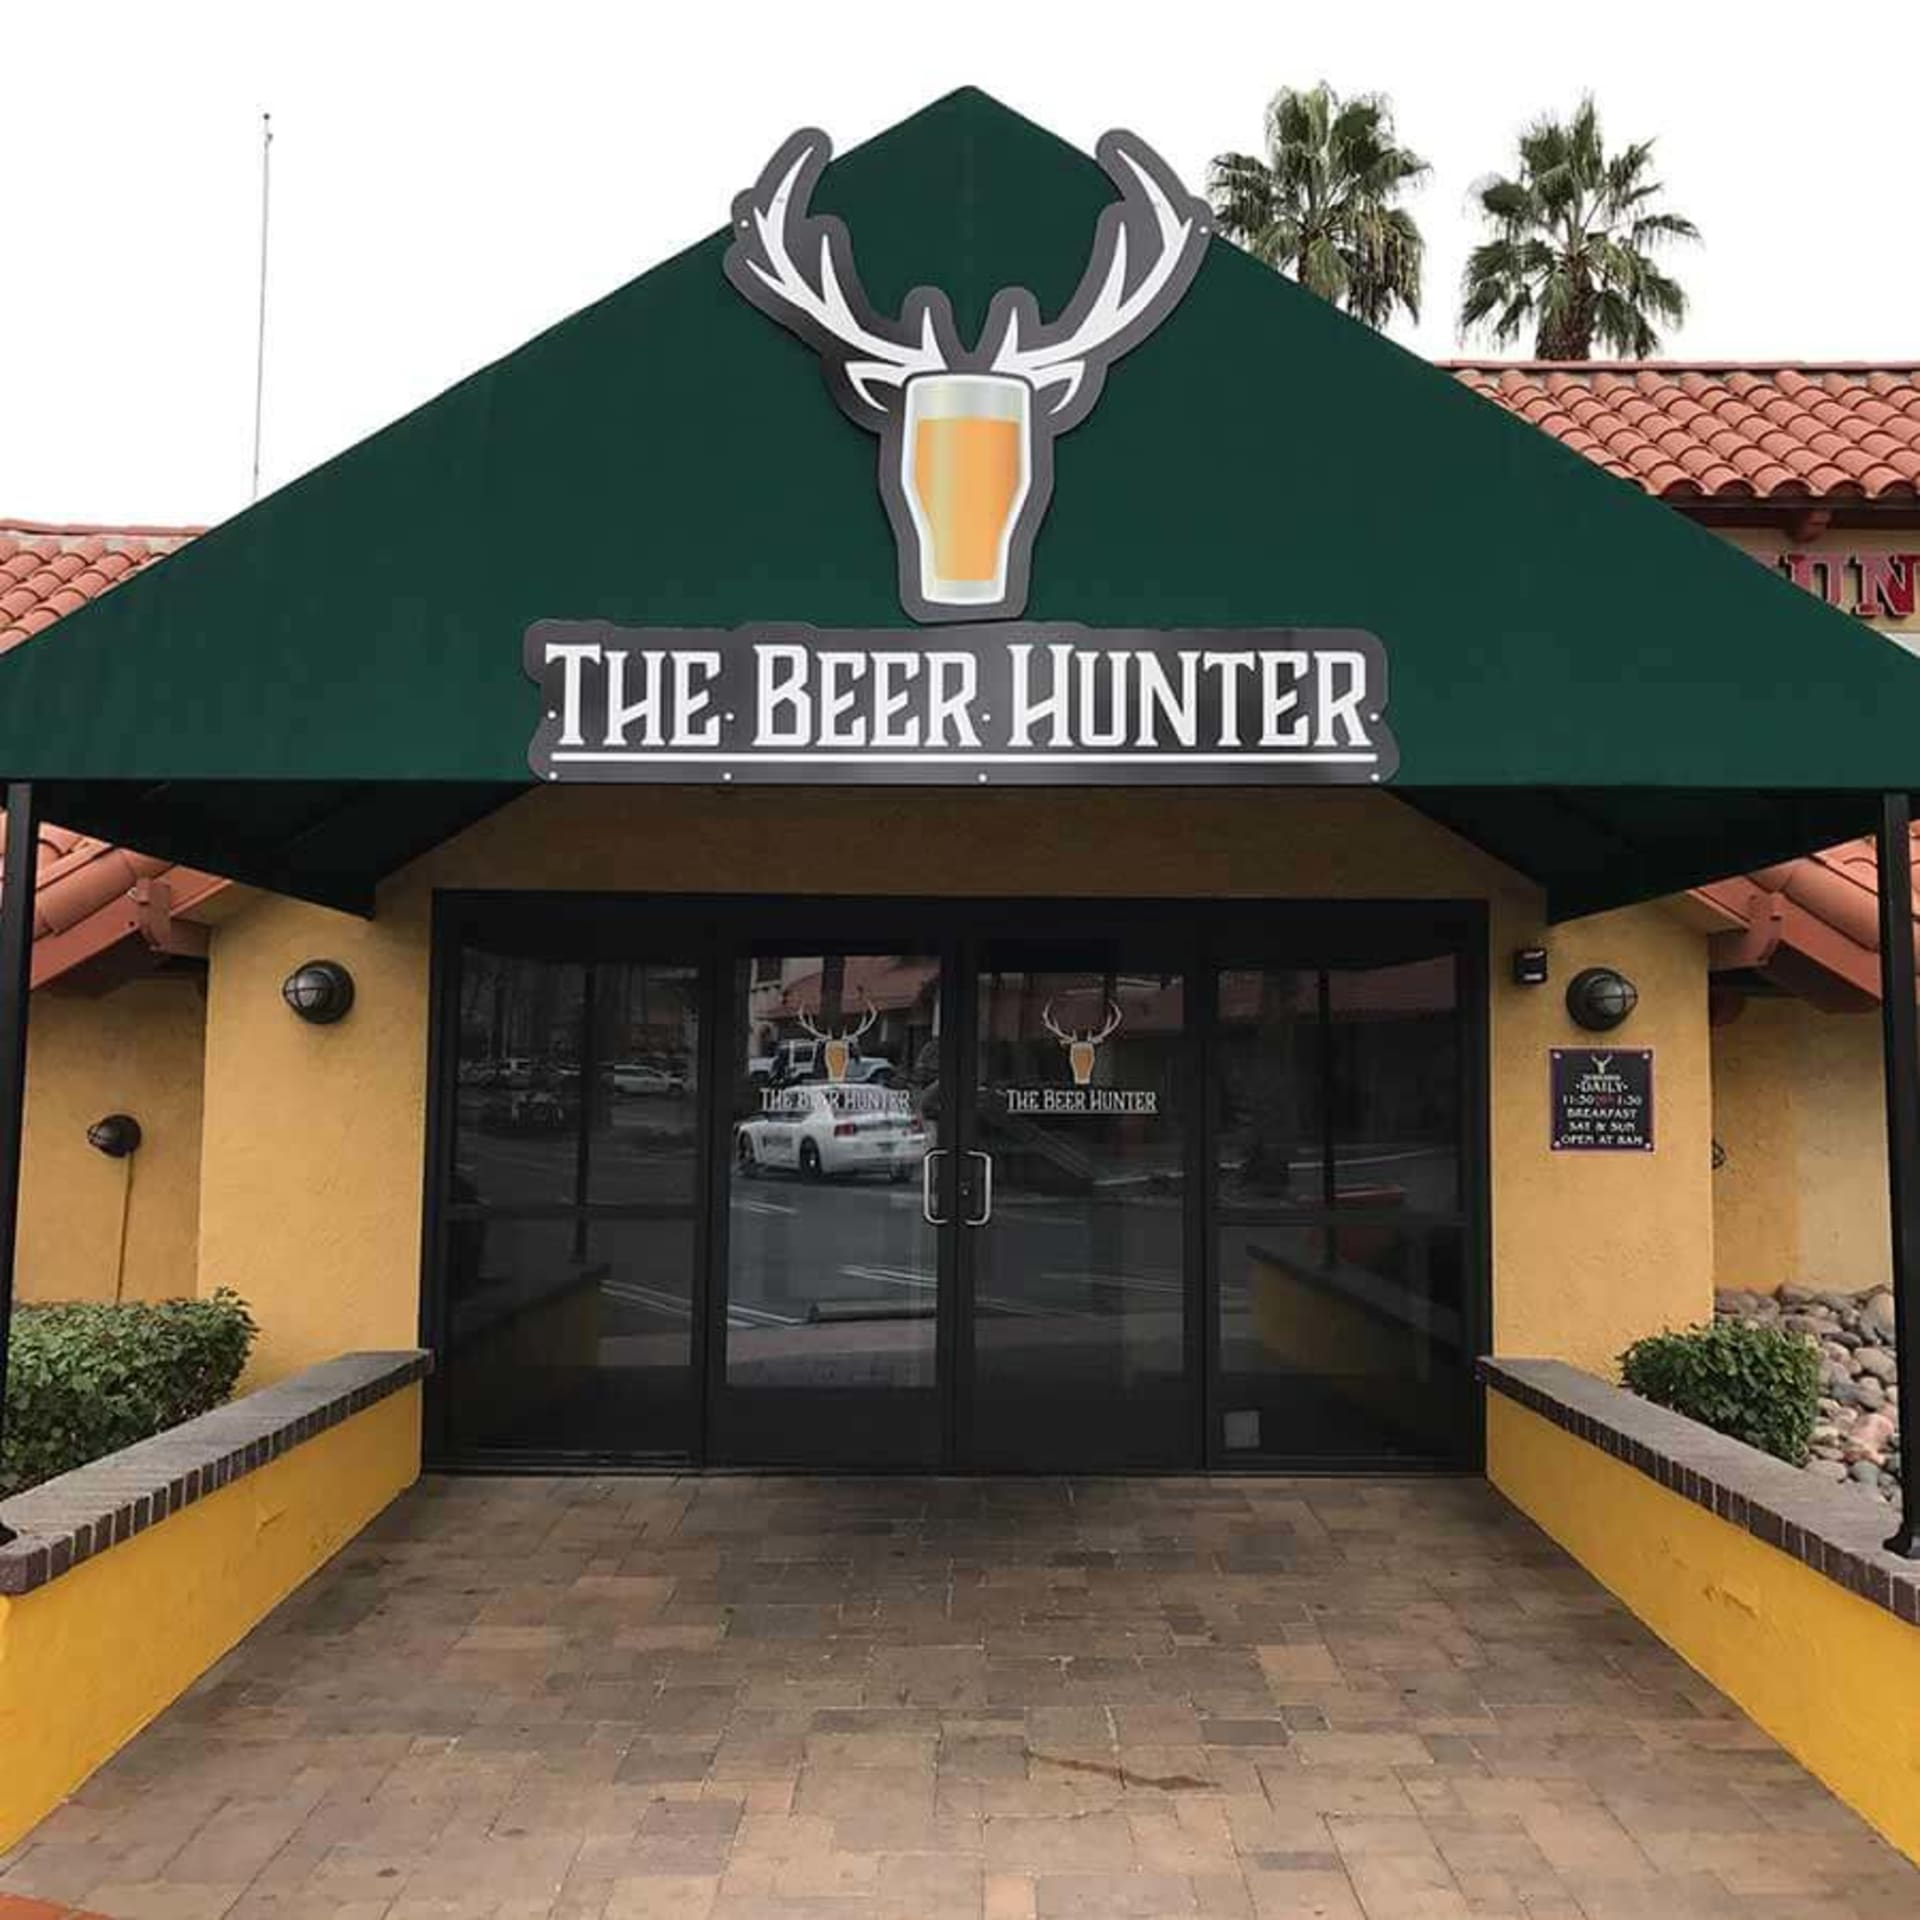 the beer hunter exterior